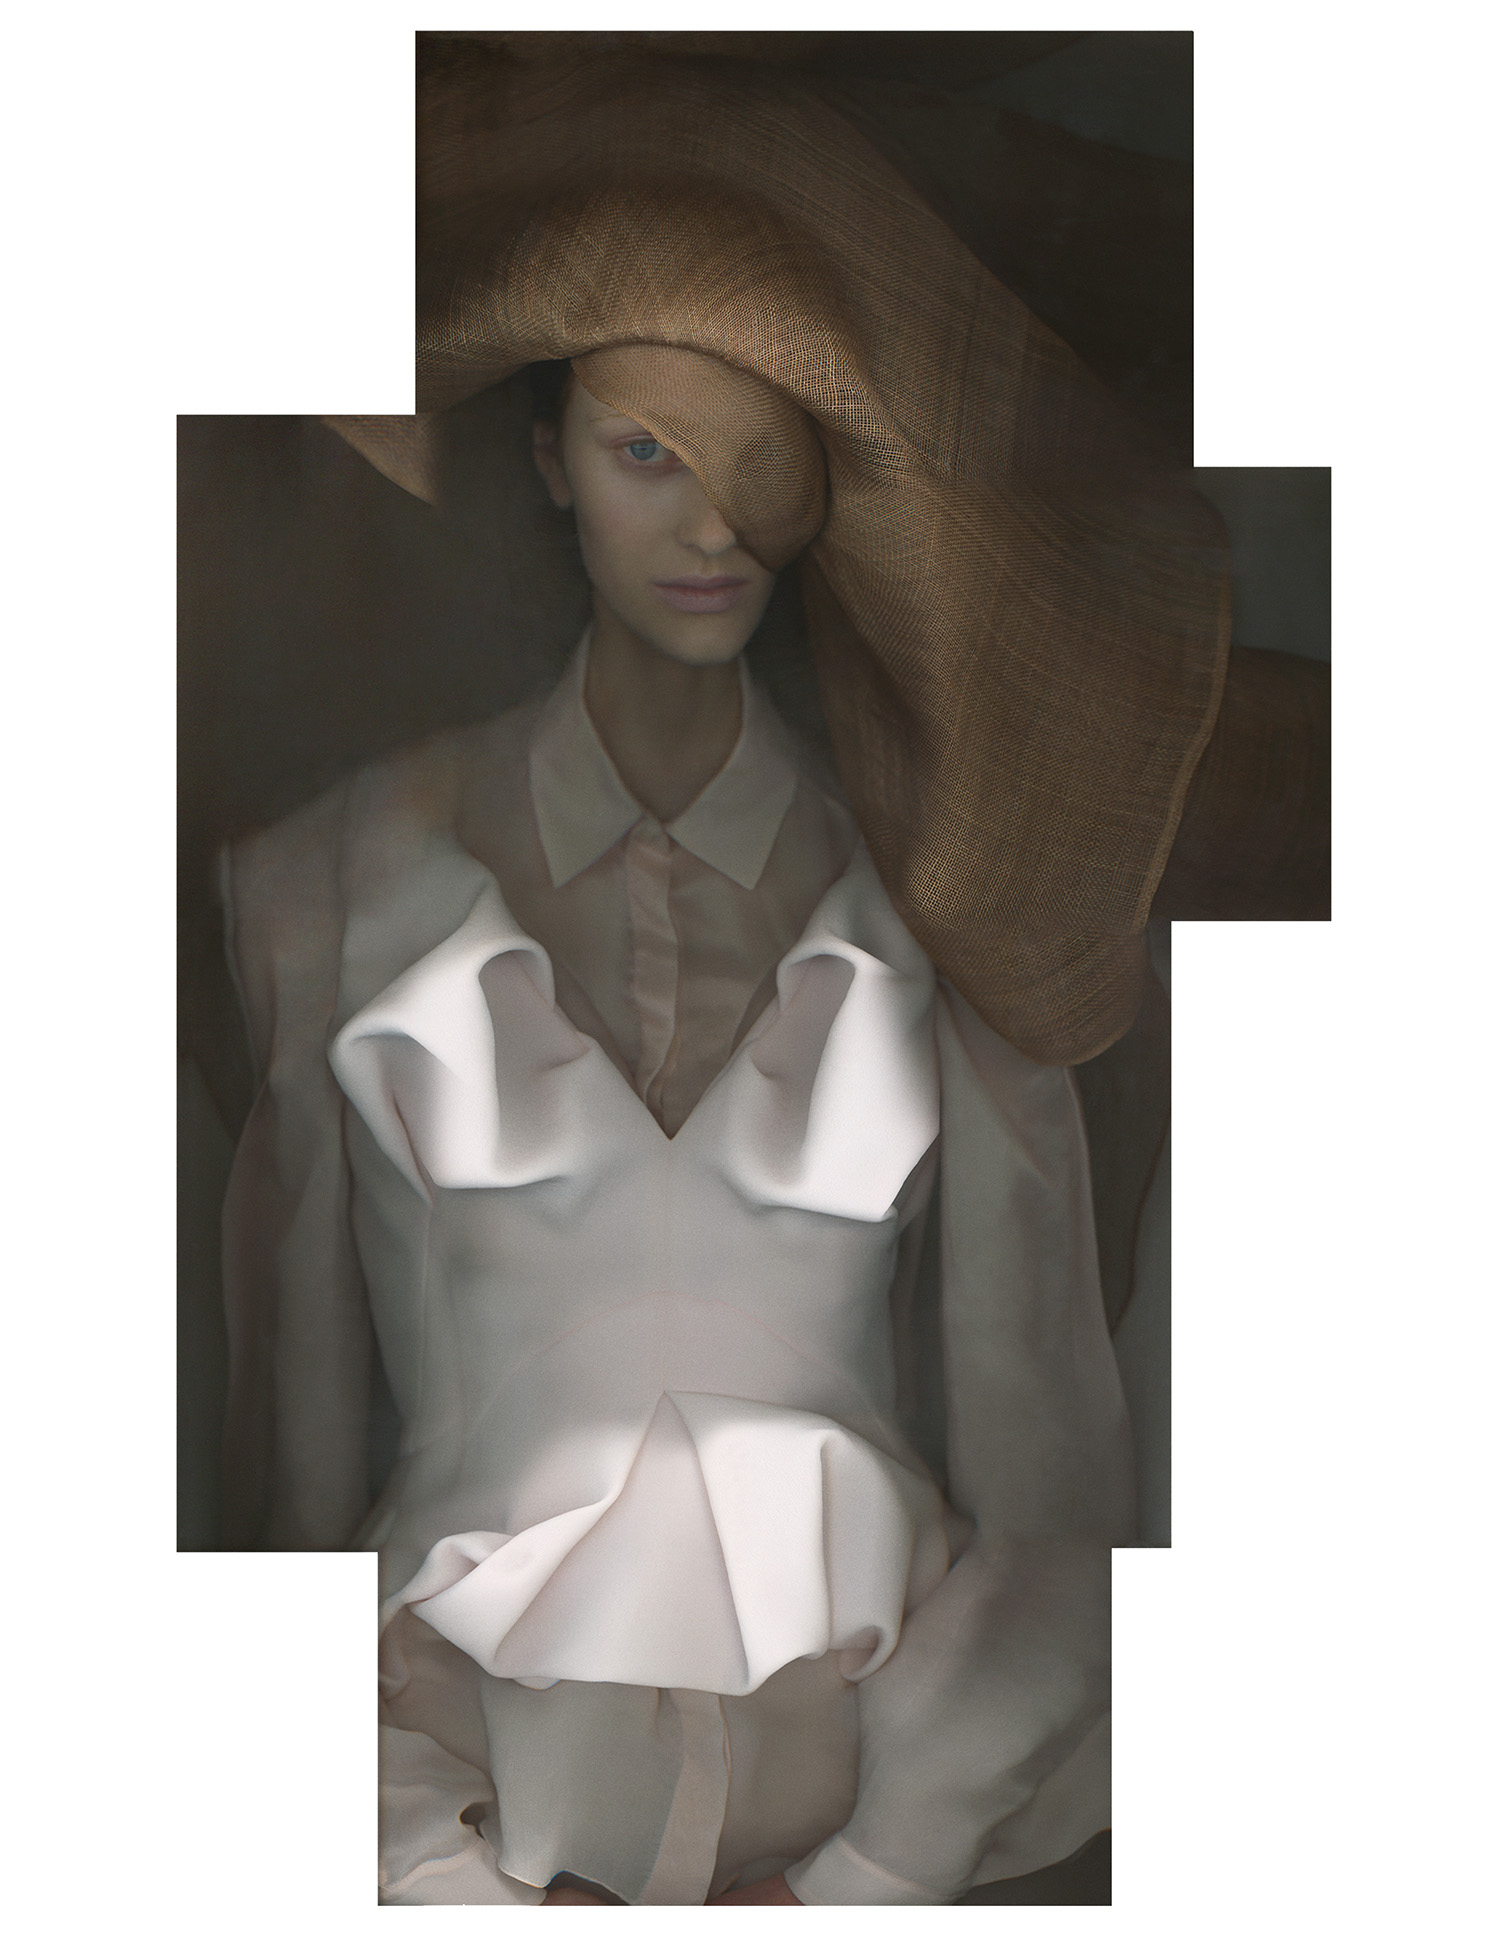 HUSSEIN CHALAYAN_FINAL FORMAT B copie